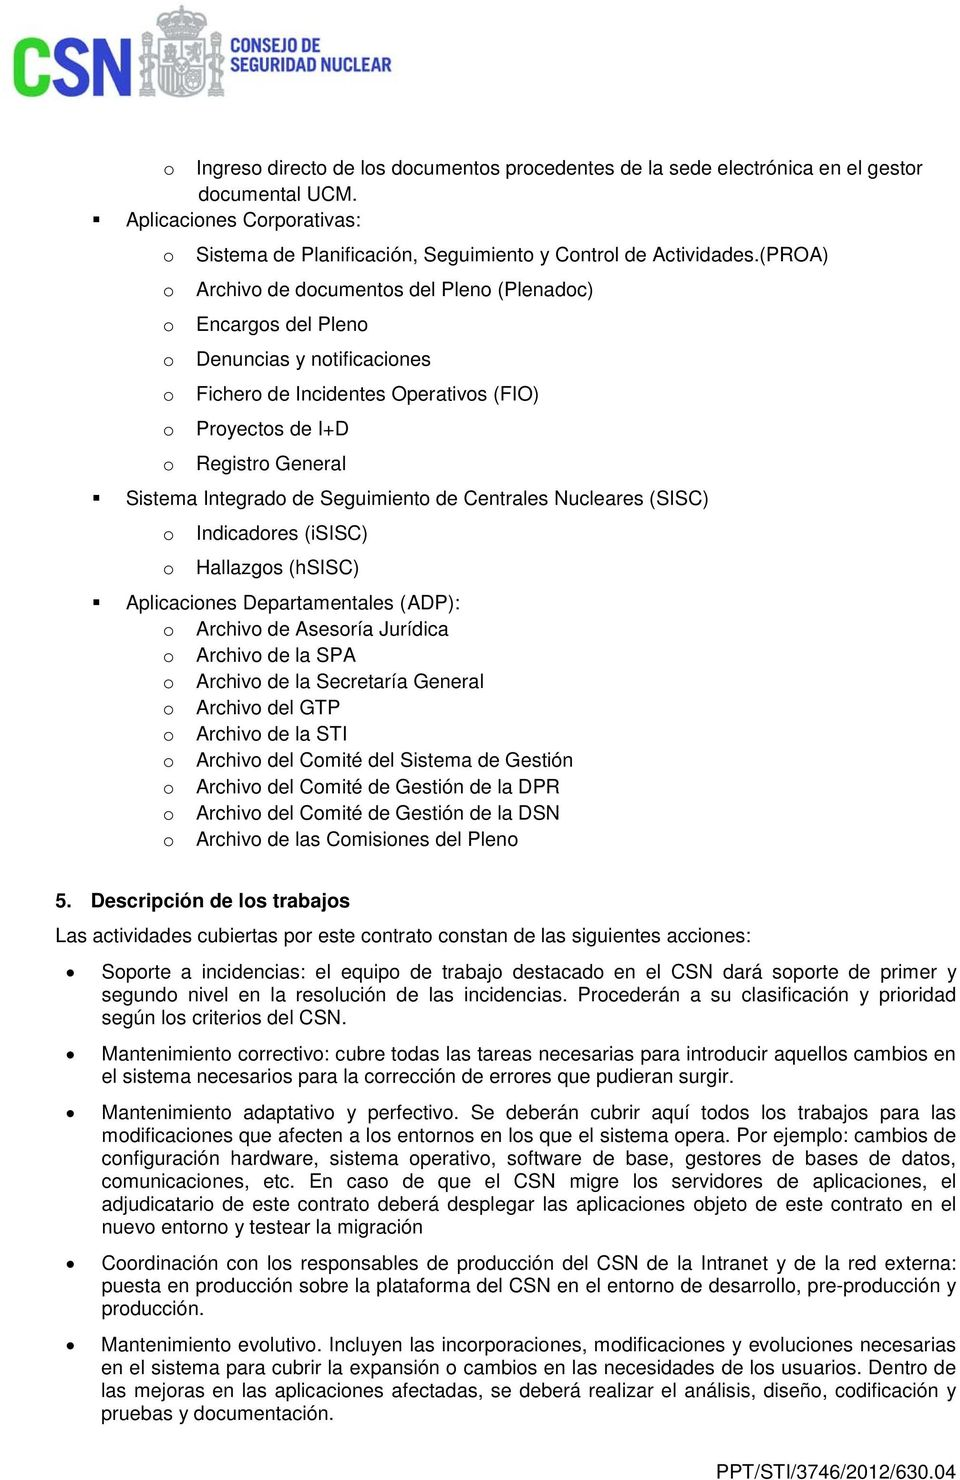 Nucleares (SISC) Indicadres (isisc) Hallazgs (hsisc) Aplicacines Departamentales ( ADP): Archiv de Asesría Jurídica Archiv de la SPA Archiv de la Secretaría General Archiv del GTP Archiv de la STI